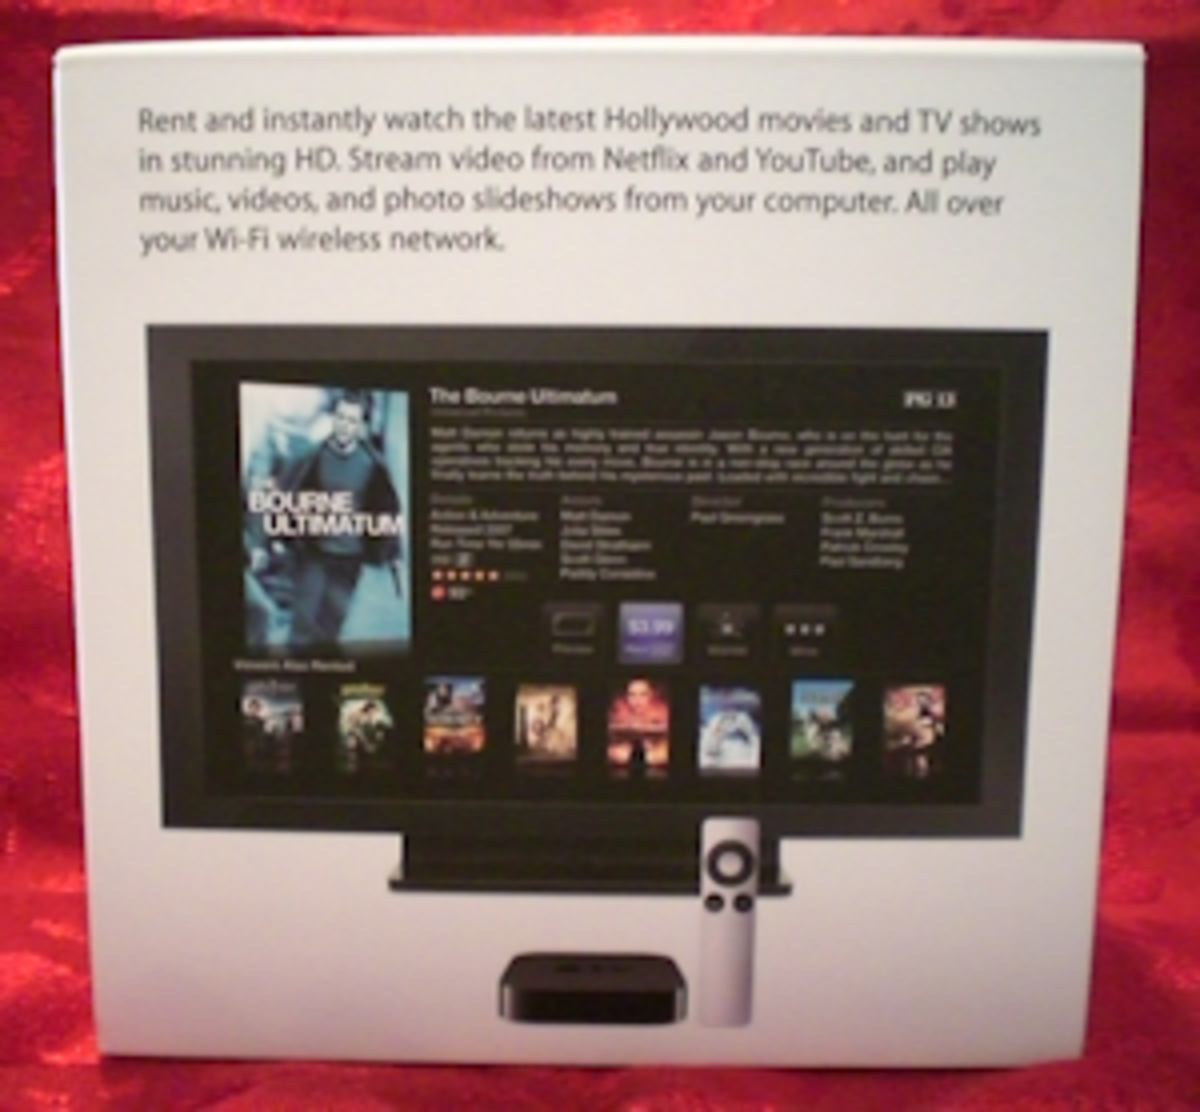 Back of packaging box for Apple TV listing some of the attributes.